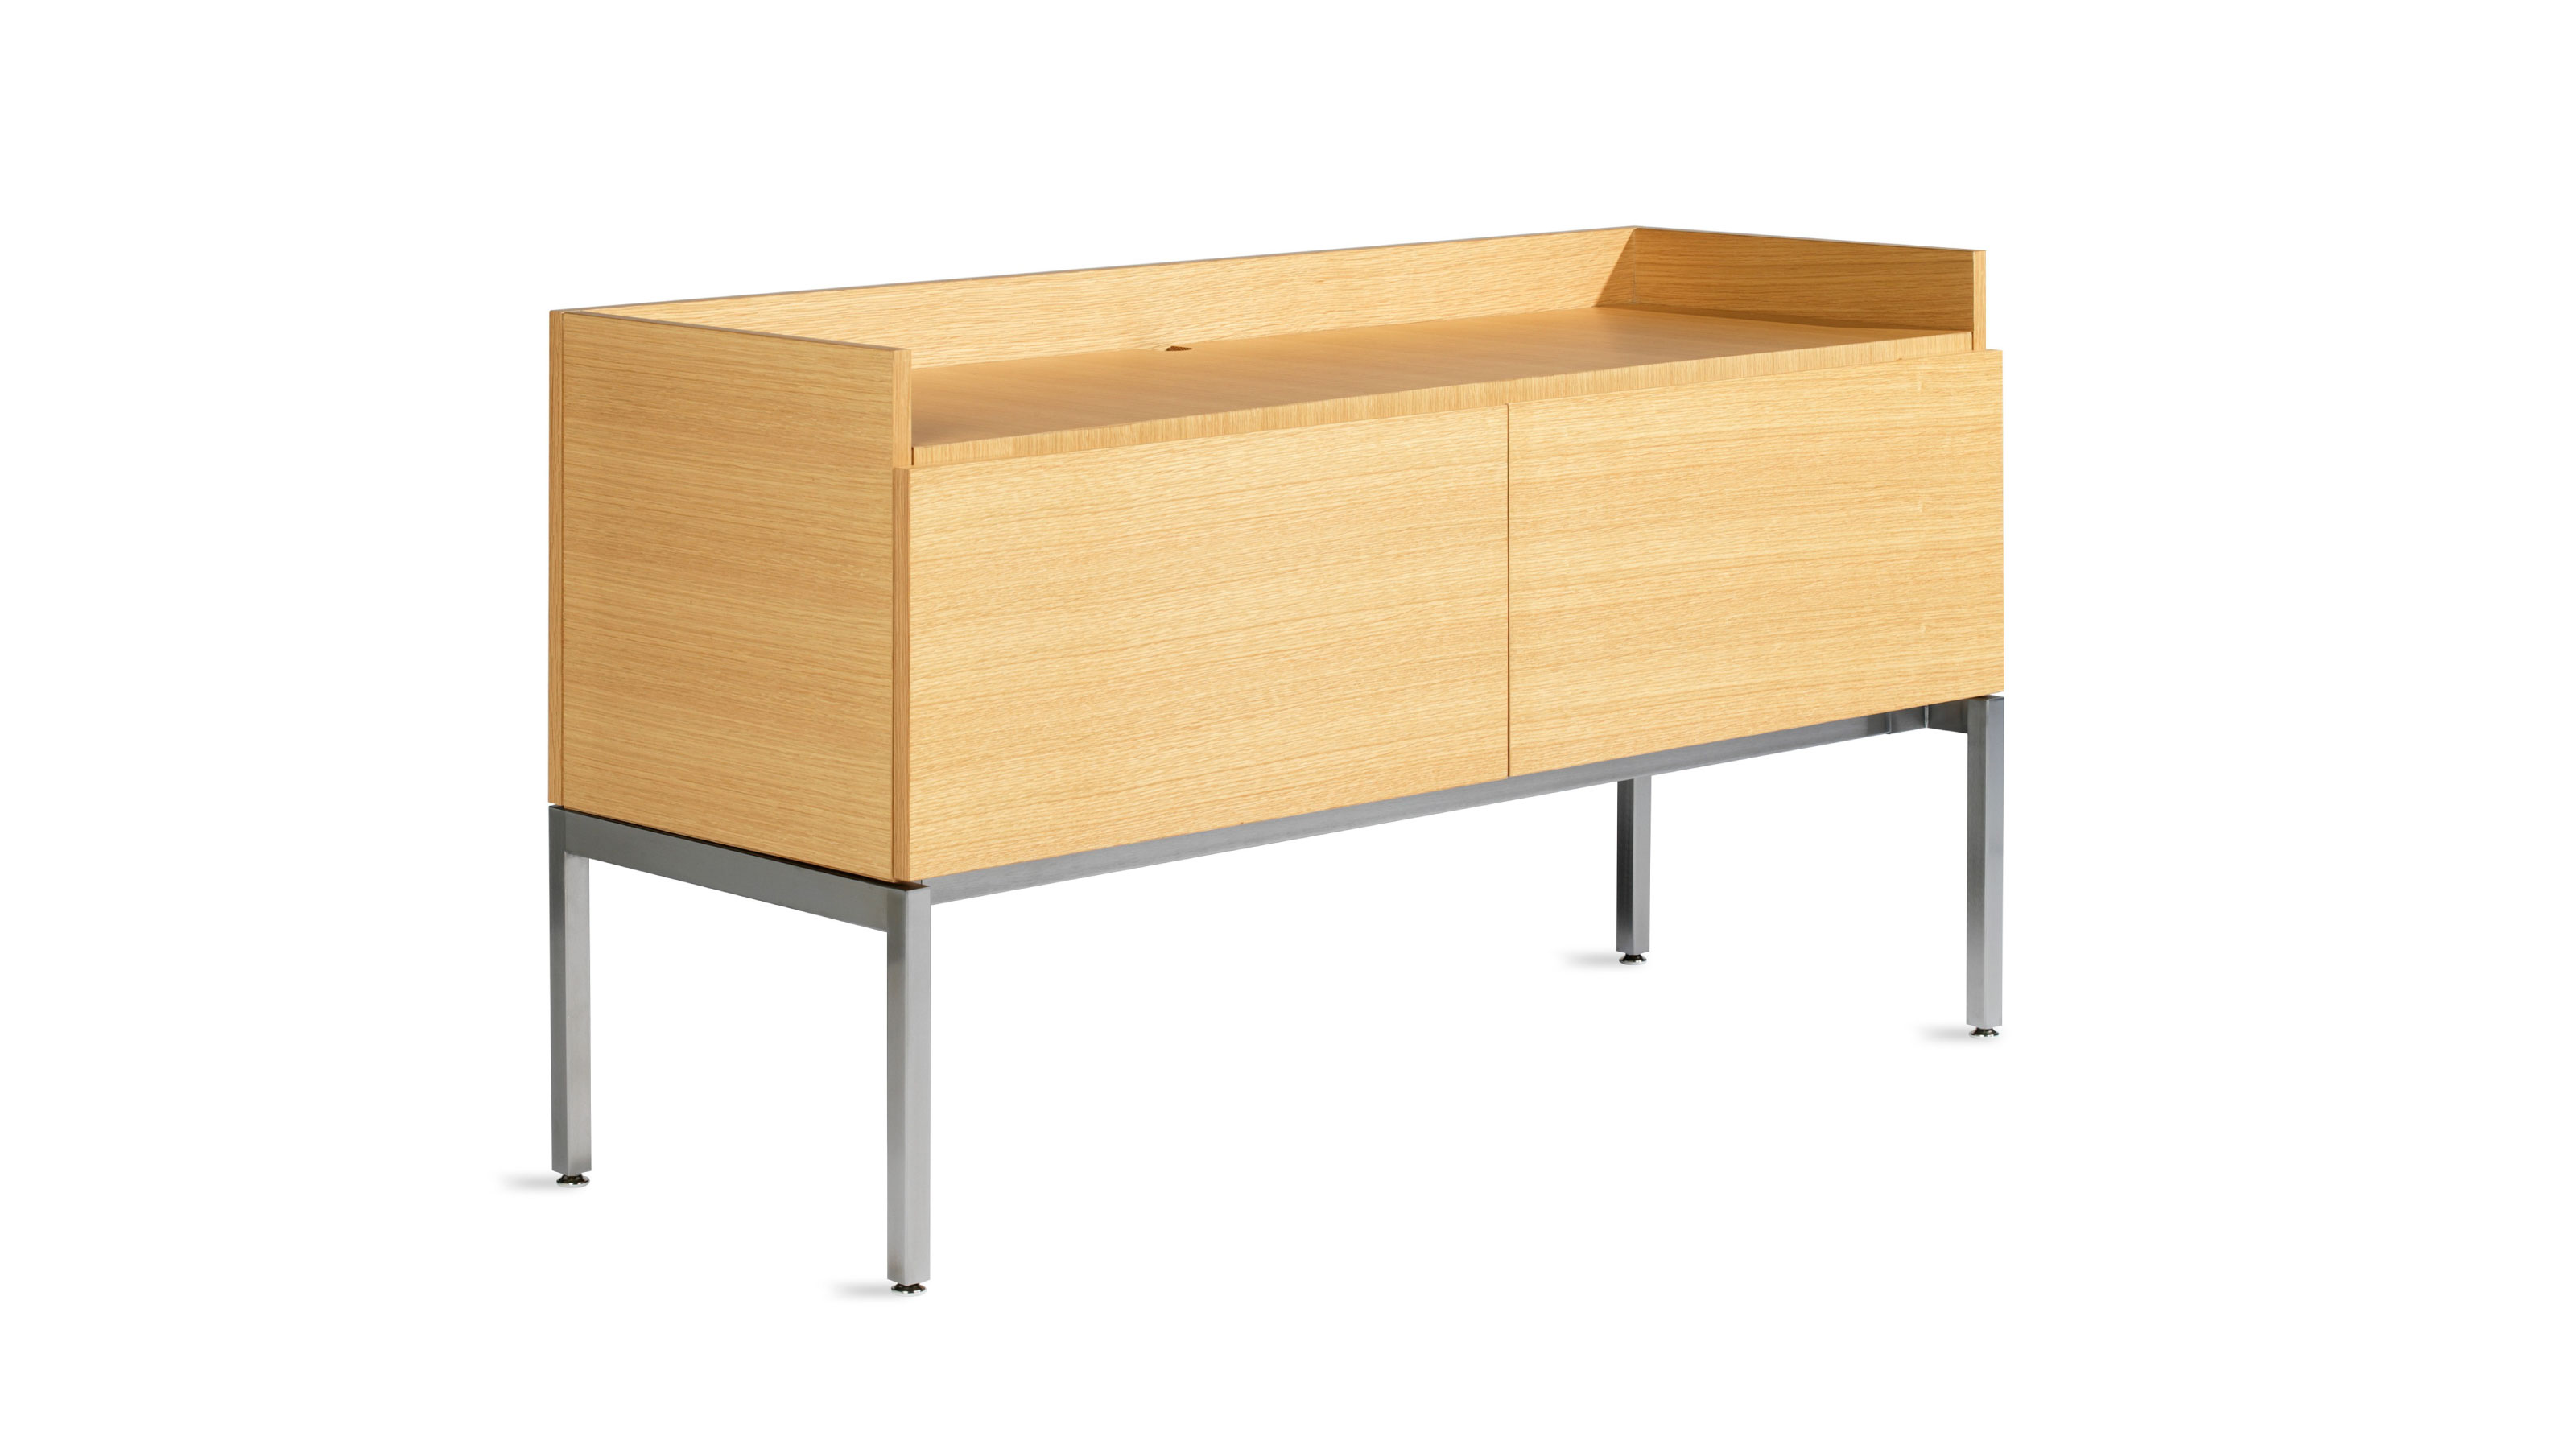 Office Storage Solutions, Hospital & Classroom Storage - Steelcase